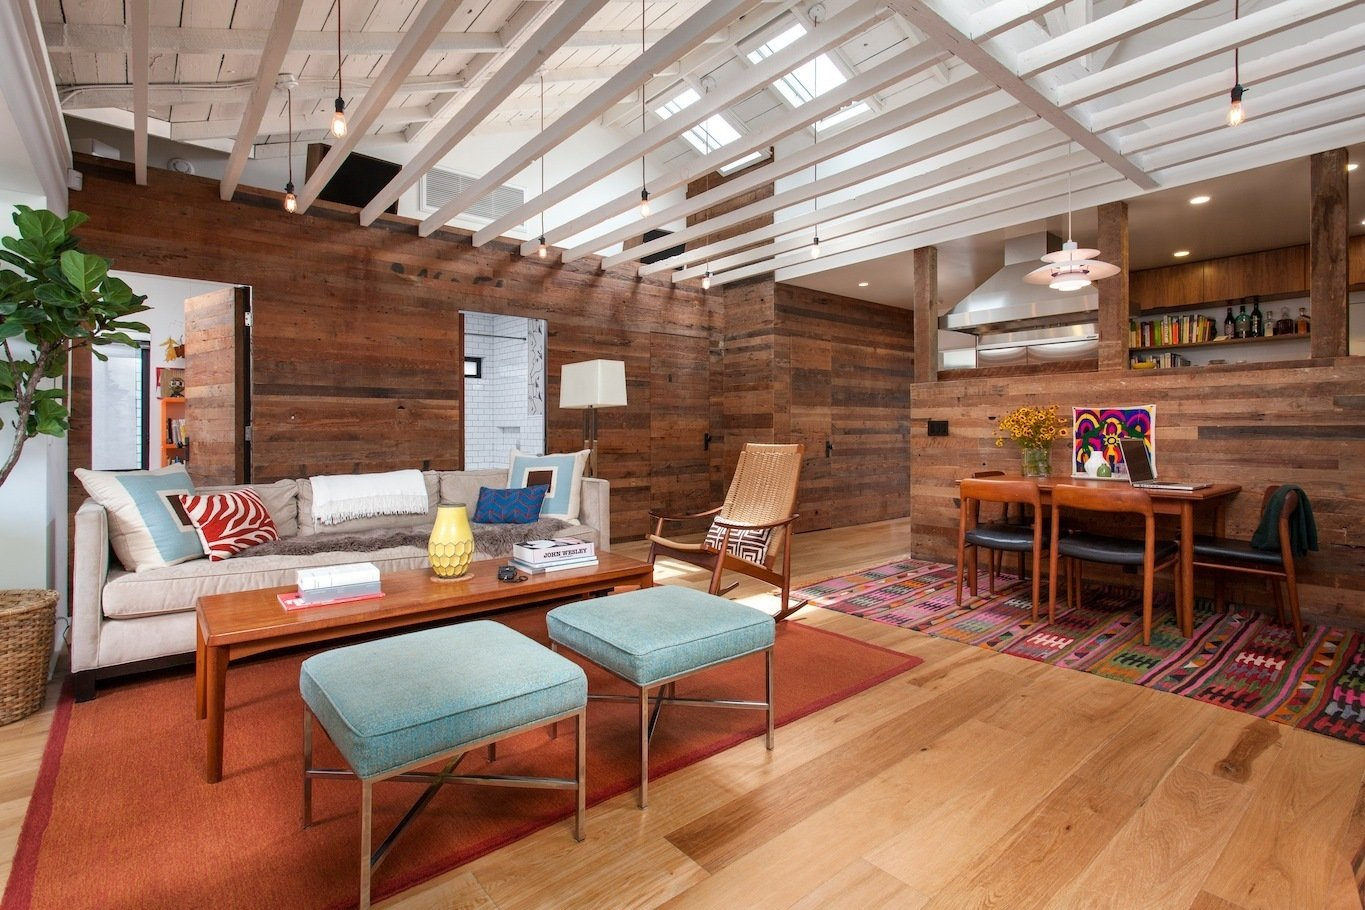 Chair, Sofa, Coffee Tables, Bench, Light Hardwood Floor, Ottomans, Pendant Lighting, Doors, Swing Door Type, Wood, and Interior Living Room looking East towards bedrooms and bathroom hidden behind reclaimed wood siding clad walls  Ashland Residence by Hsu McCullough